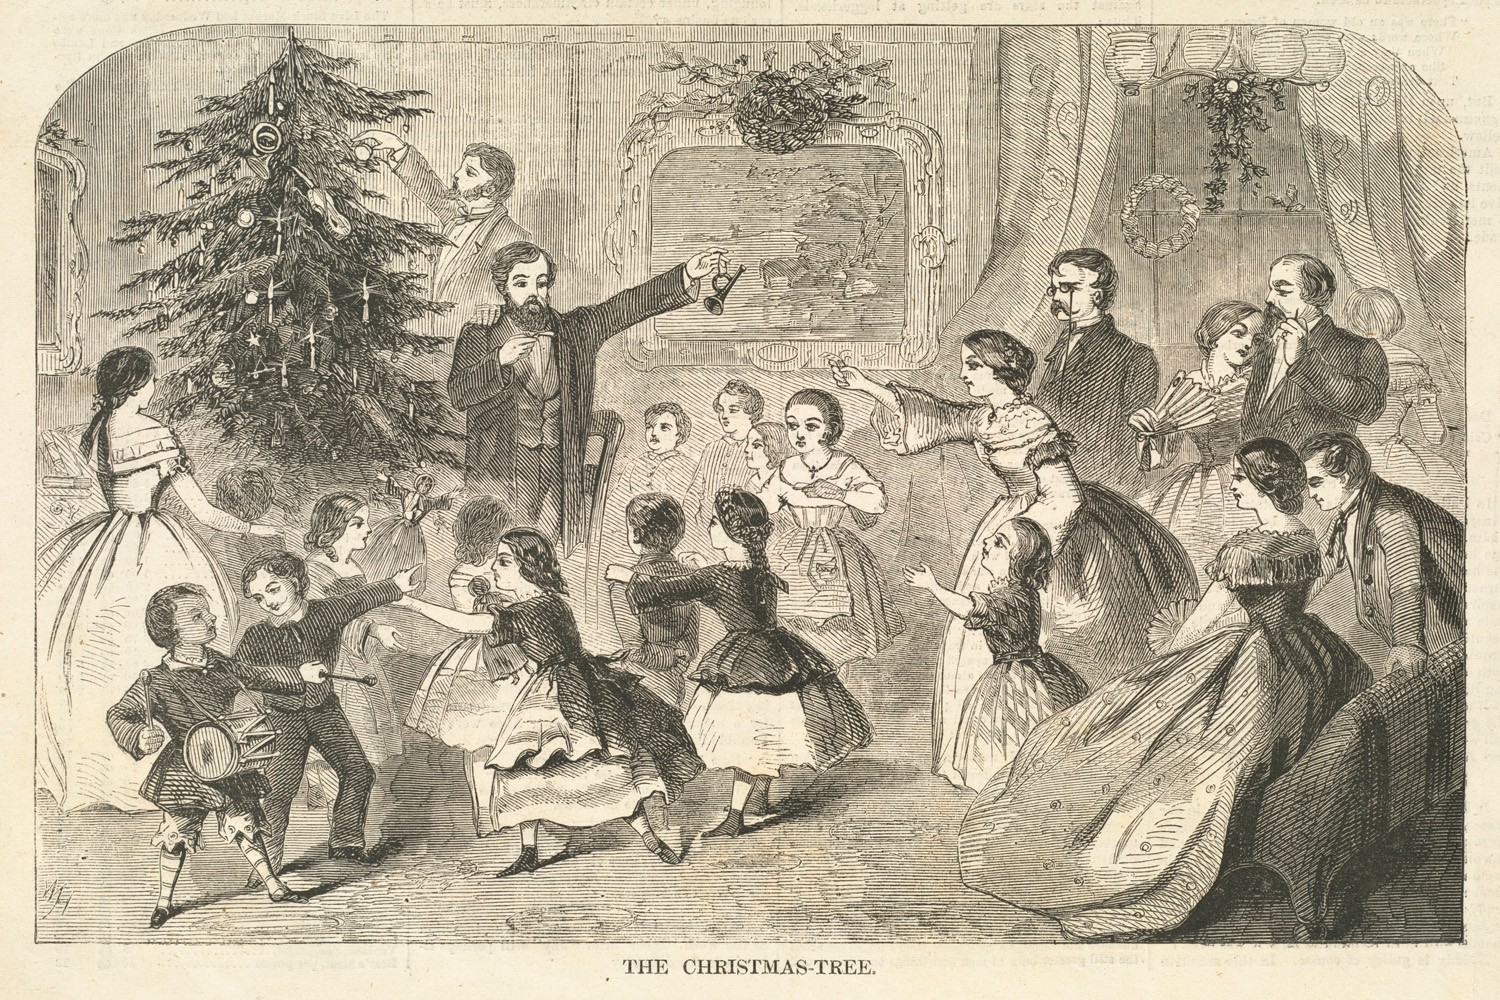 The history of Christmas traditions © Boston Public Library